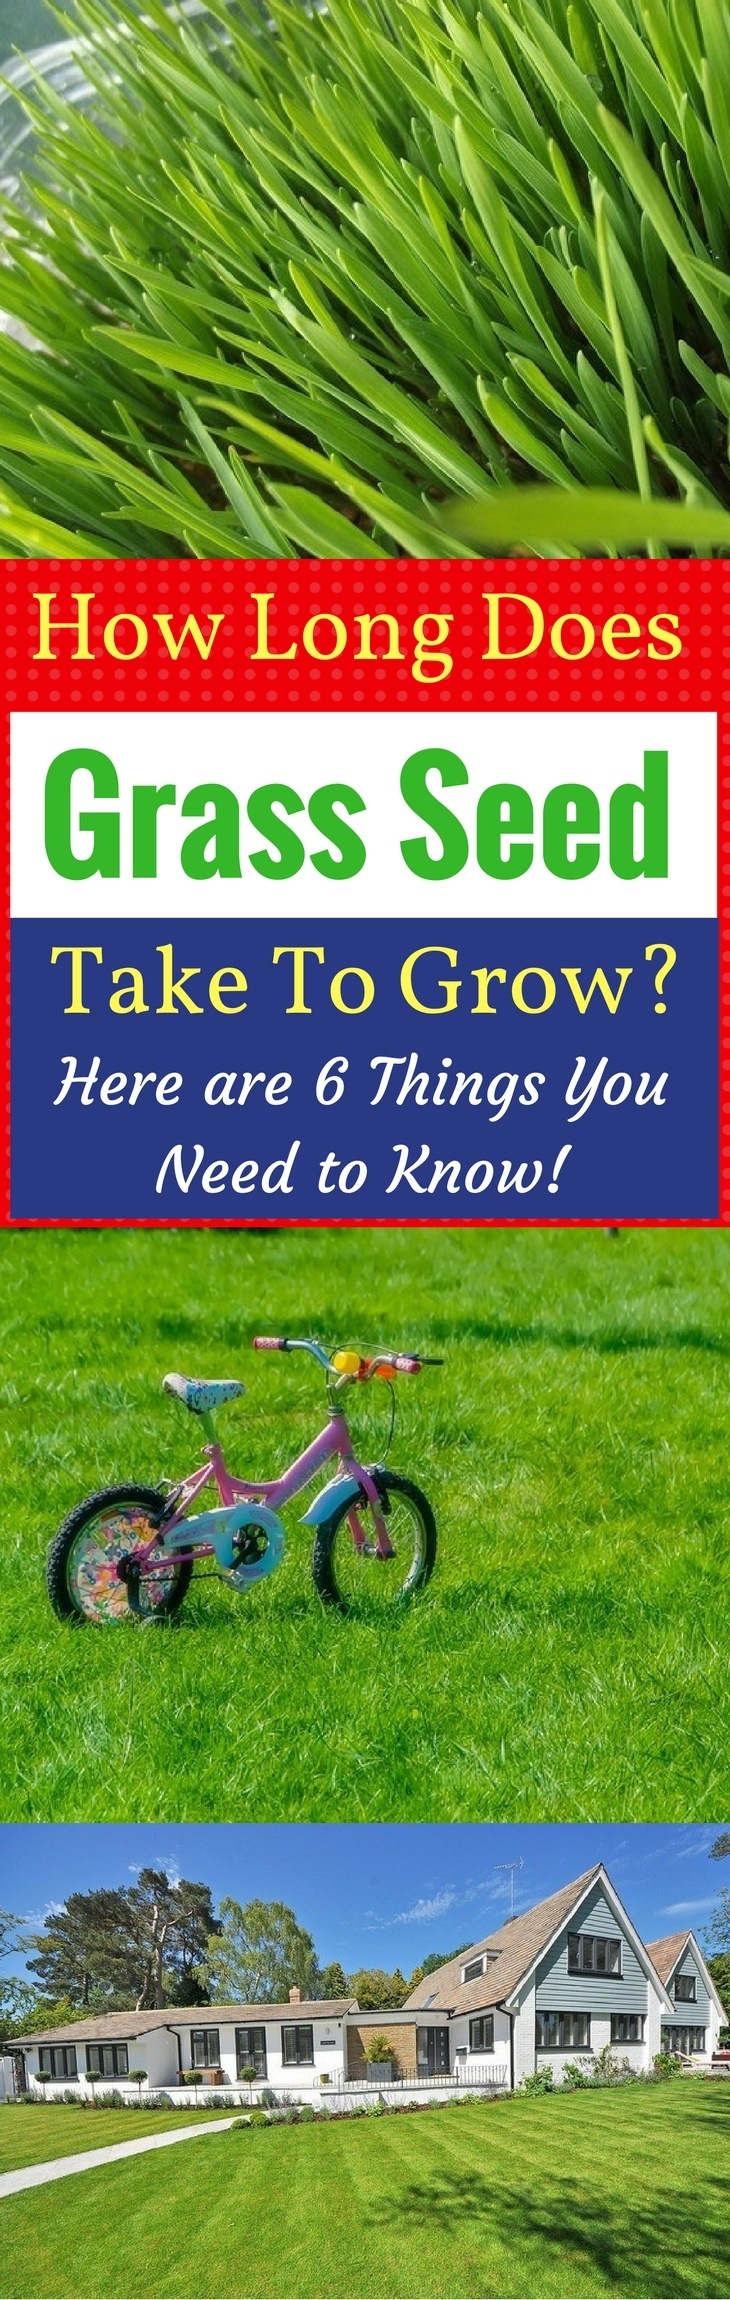 Ever Wonder How Long Does Grass Seed Take To Grow? Here are 6 Things You Need to Know!